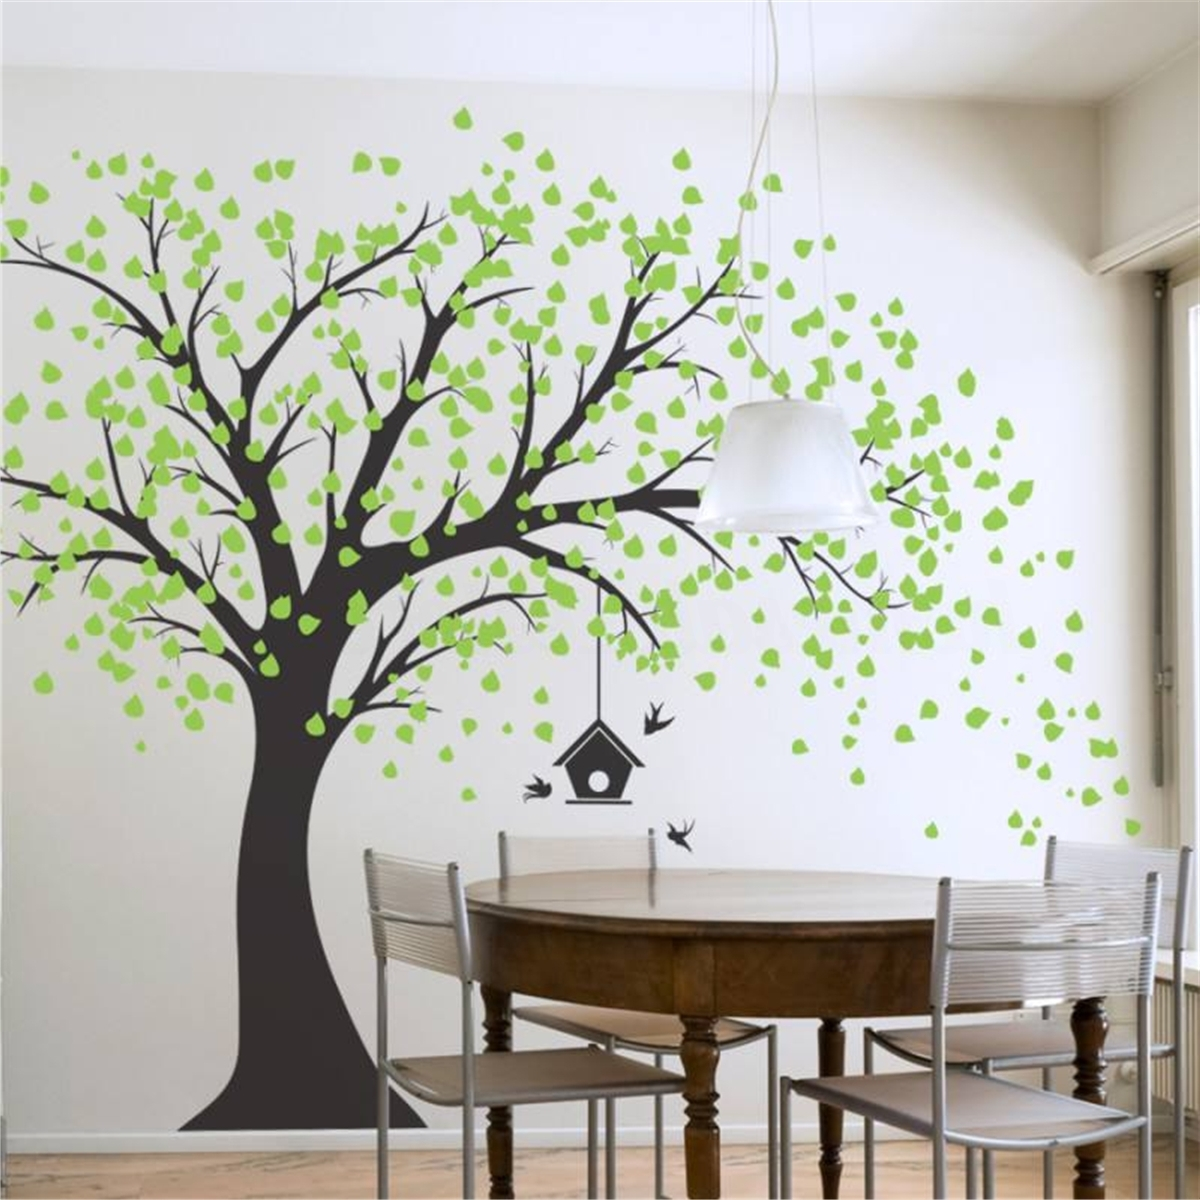 Popular 210Cmx180Cm Diy Tree Wall Paper Art Wall Sticker Home Bedroom Bbay Intended For Wall Tree Art (View 12 of 15)